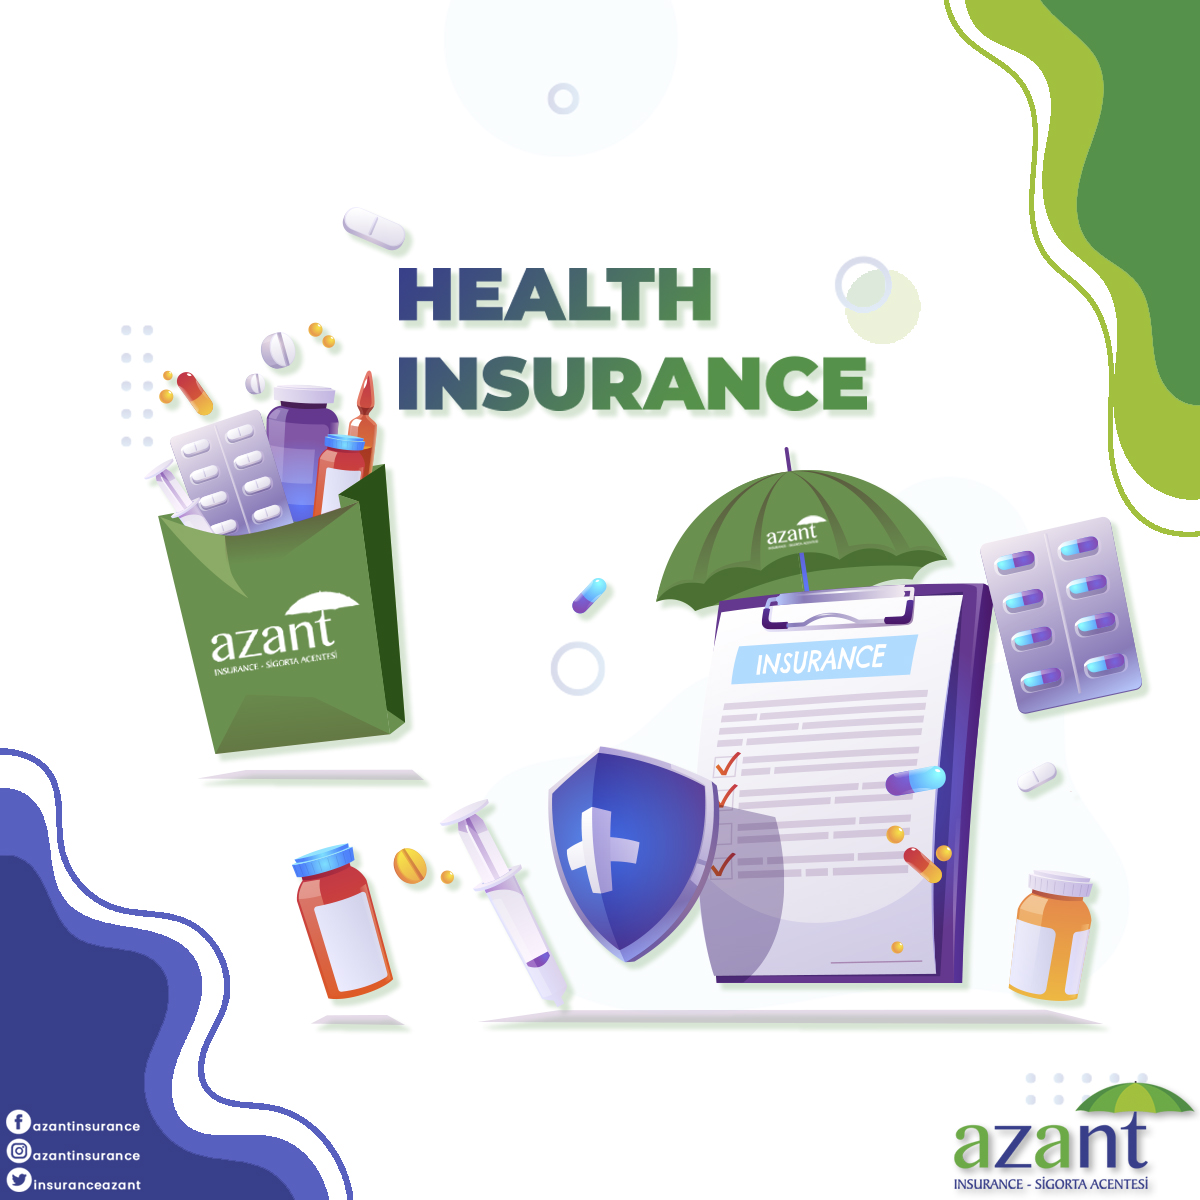 Your most valuable asset is your health! You can contact us about our services.  https://t.co/05zVvPSbJV  #azantinsurance #insurance #insuranceagency #insurancelife #investment #health #healthy #healthylifestyle #healthylife #healthyliving #healthinsurance #cyprus #northcyprus https://t.co/LFNEsAoqZr